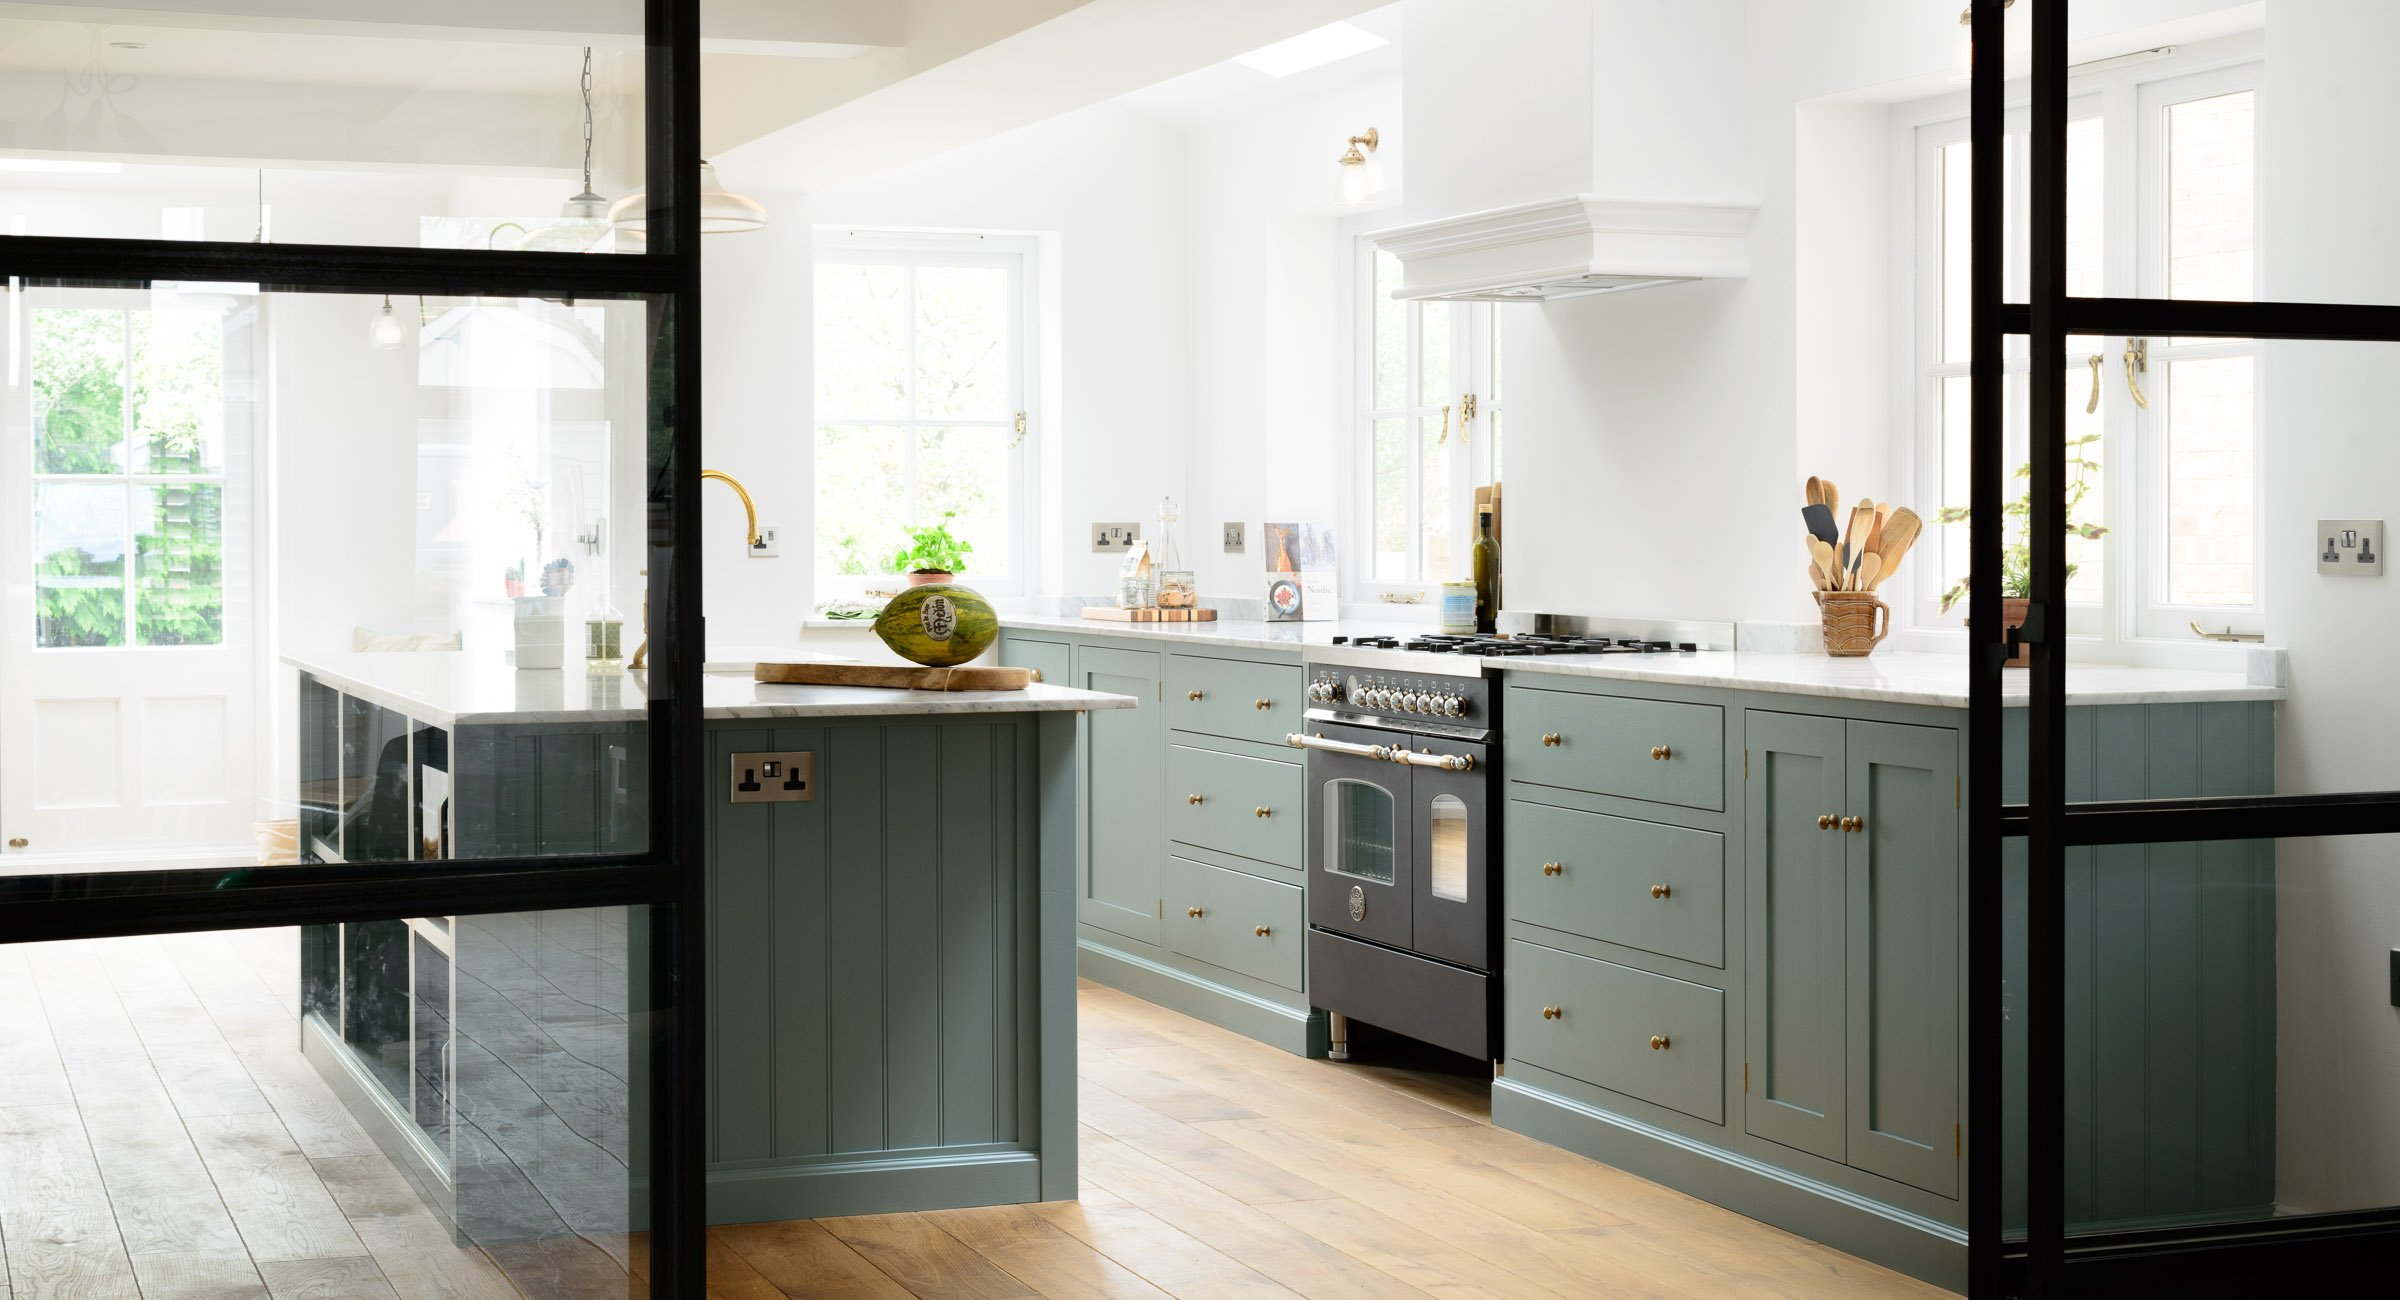 (Source) Blue Green Kitchen Cabinets